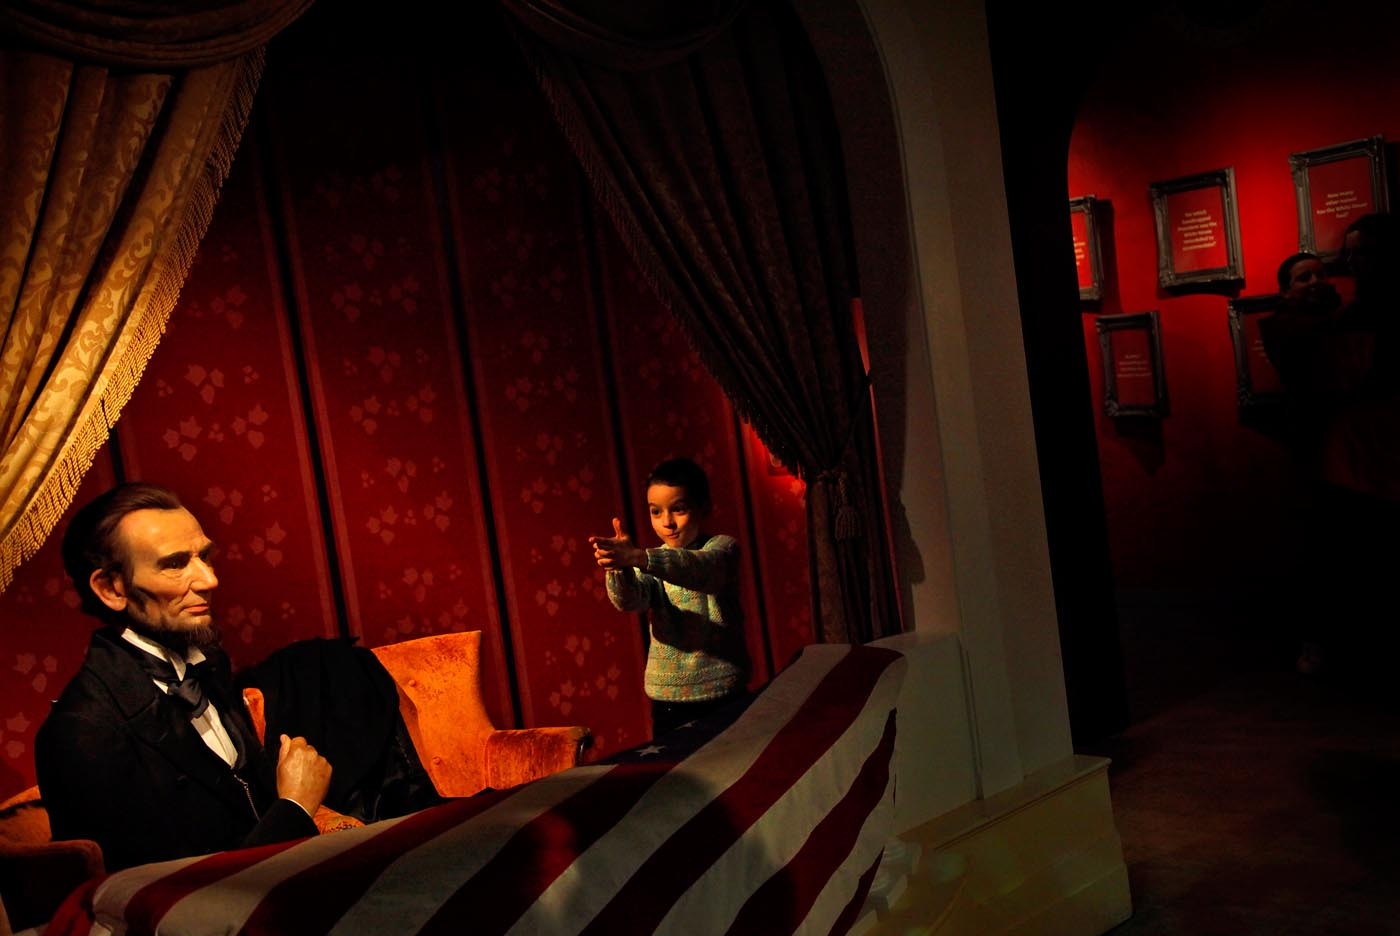 A boy plays around a wax replica of President Abraham Lincoln sitting in Ford's Theatre at Madame Tussauds in Washington, D.C. on Sunday, January 15, 2012.